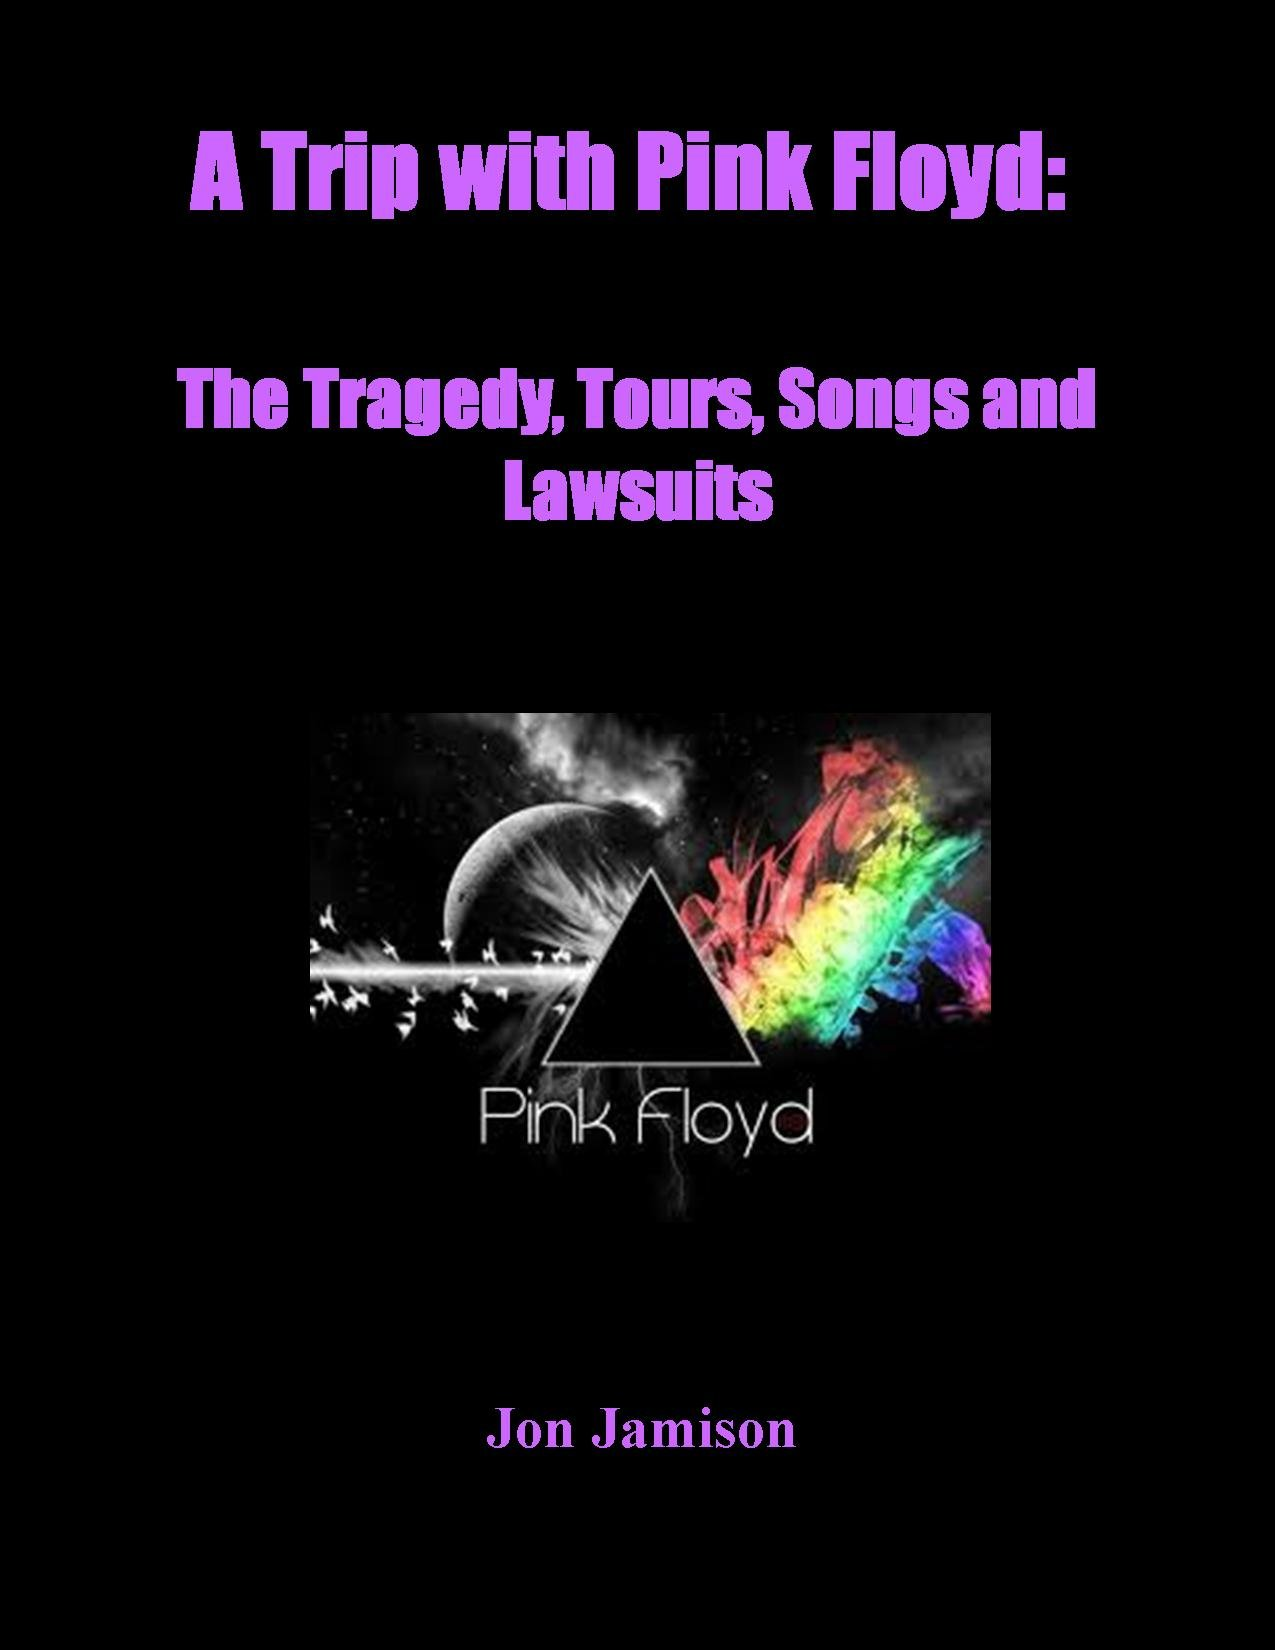 A Trip with Pink Floyd: The Tragedy, Tours, Songs and Lawsuits